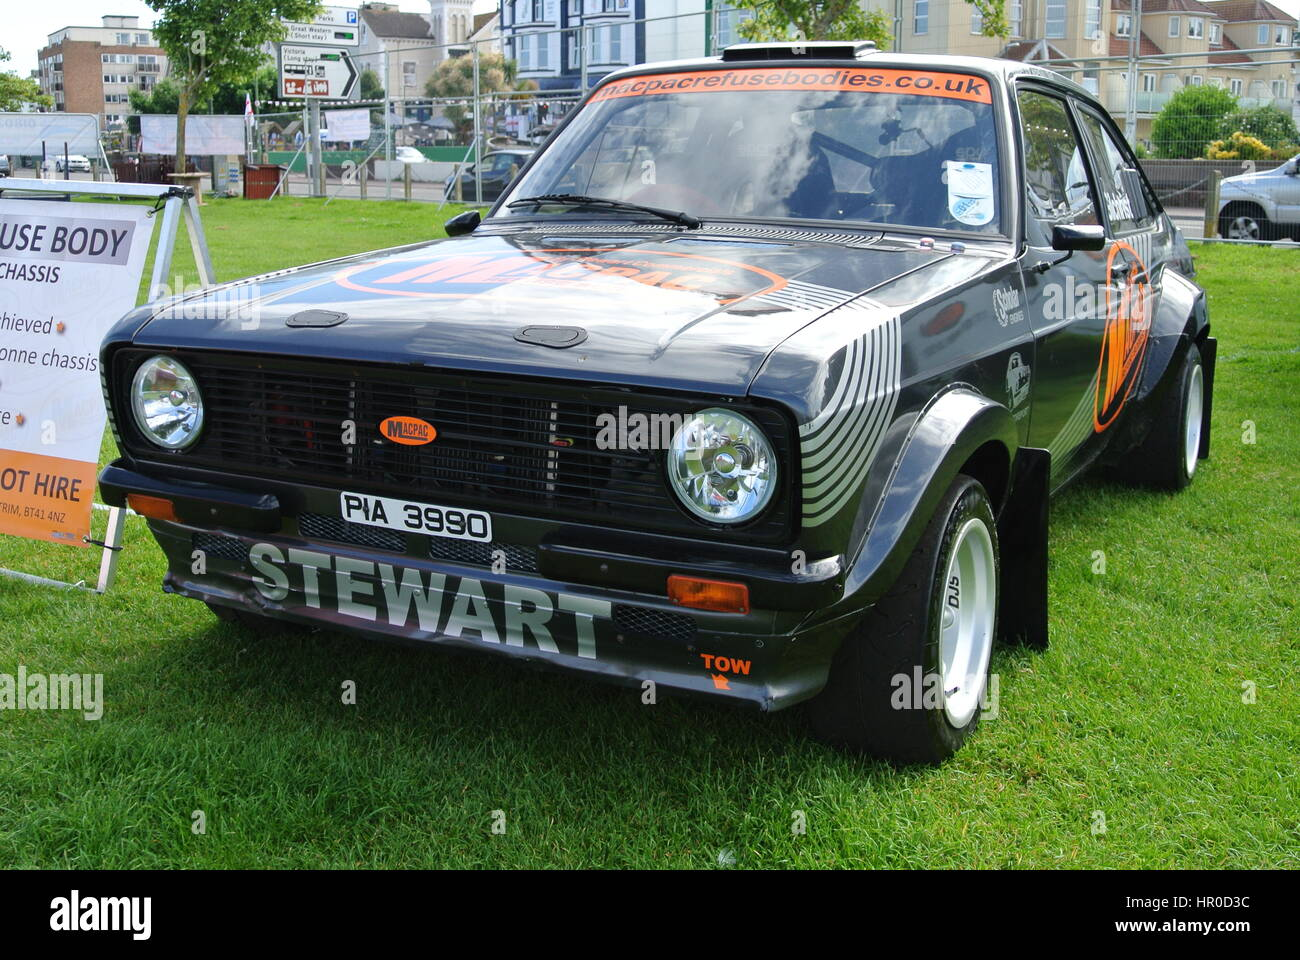 Ford Mk2 Escort Stock Photos & Ford Mk2 Escort Stock Images - Alamy